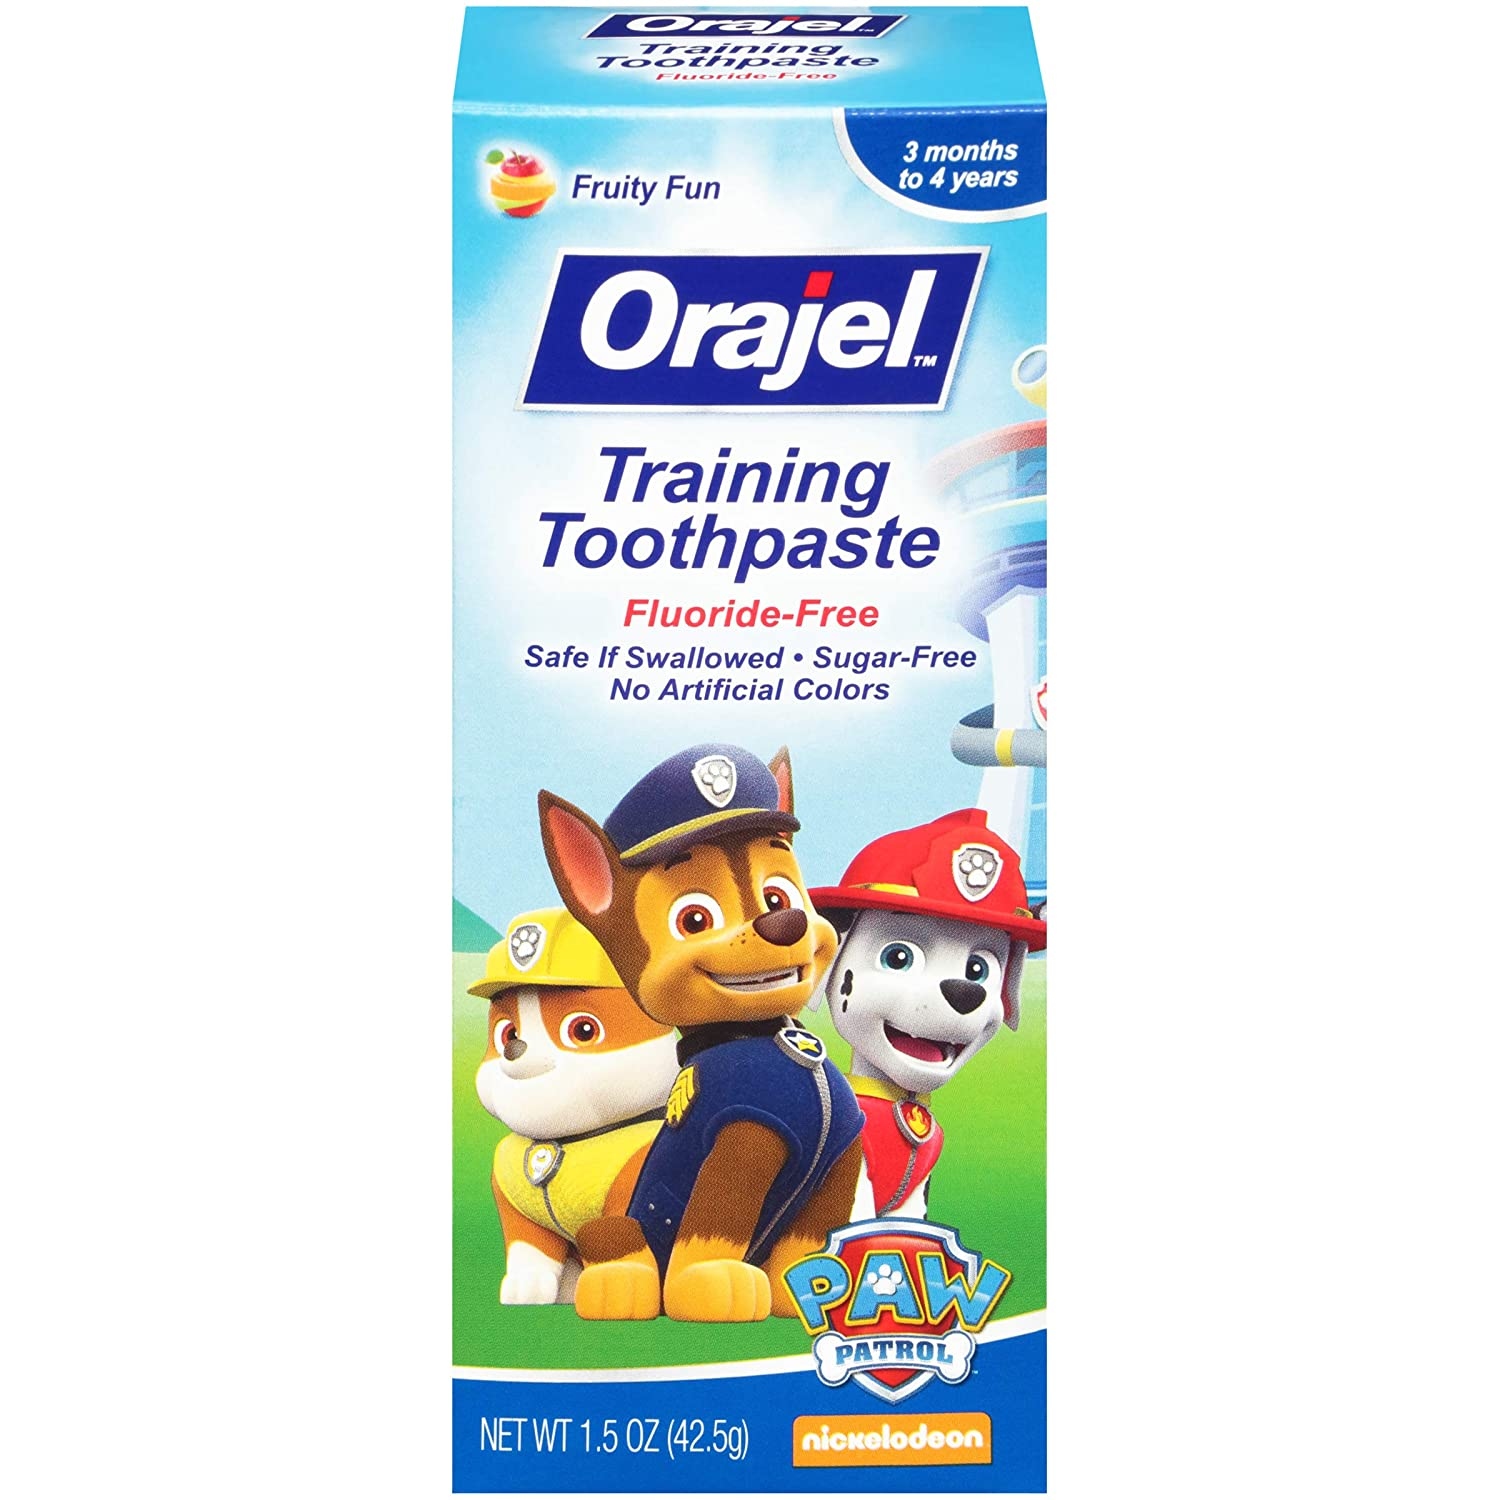 Orajel Fluoride-Free Training Toothpaste for Toddlers, Paw Patrol, 42.5-g Church & Dwight CA 310310324605